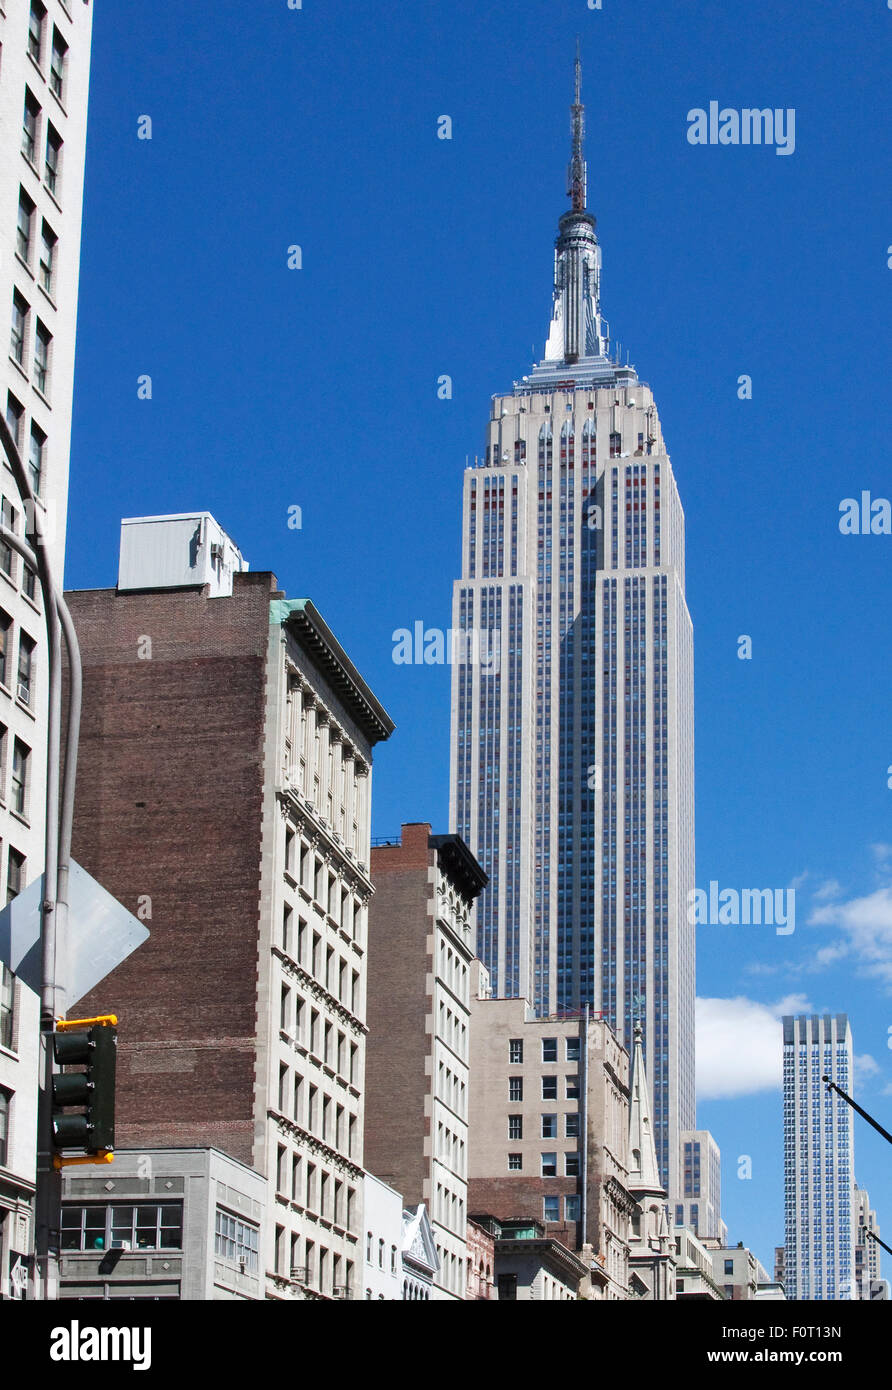 the empire state building at 102 stories is the tallest skyscraper